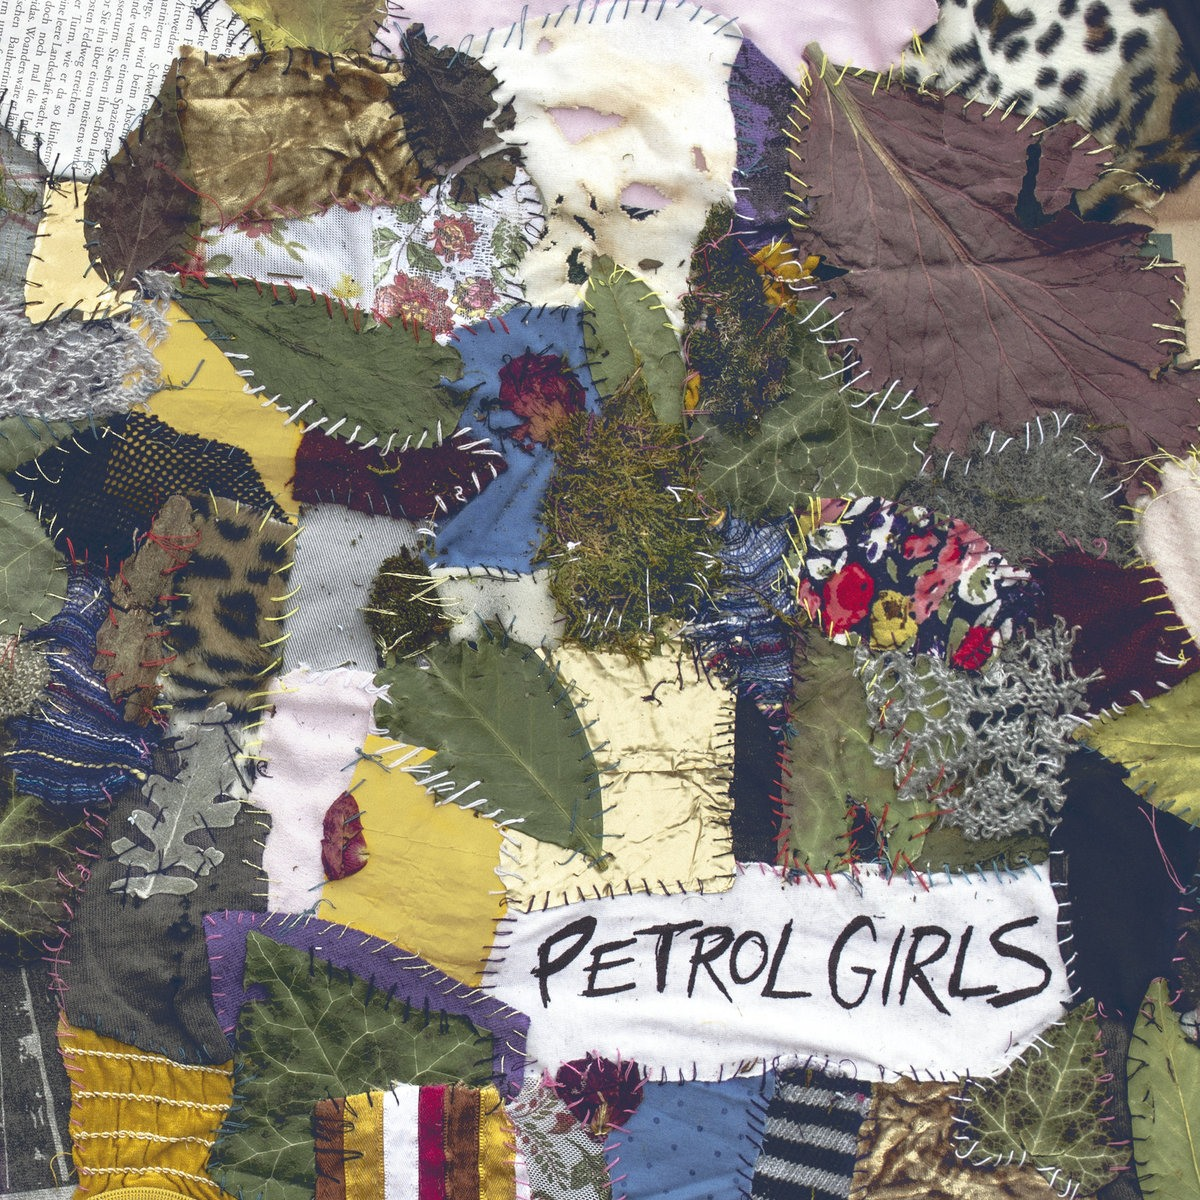 Three years after their debut record, Petrol Girls are still ballsy as ever